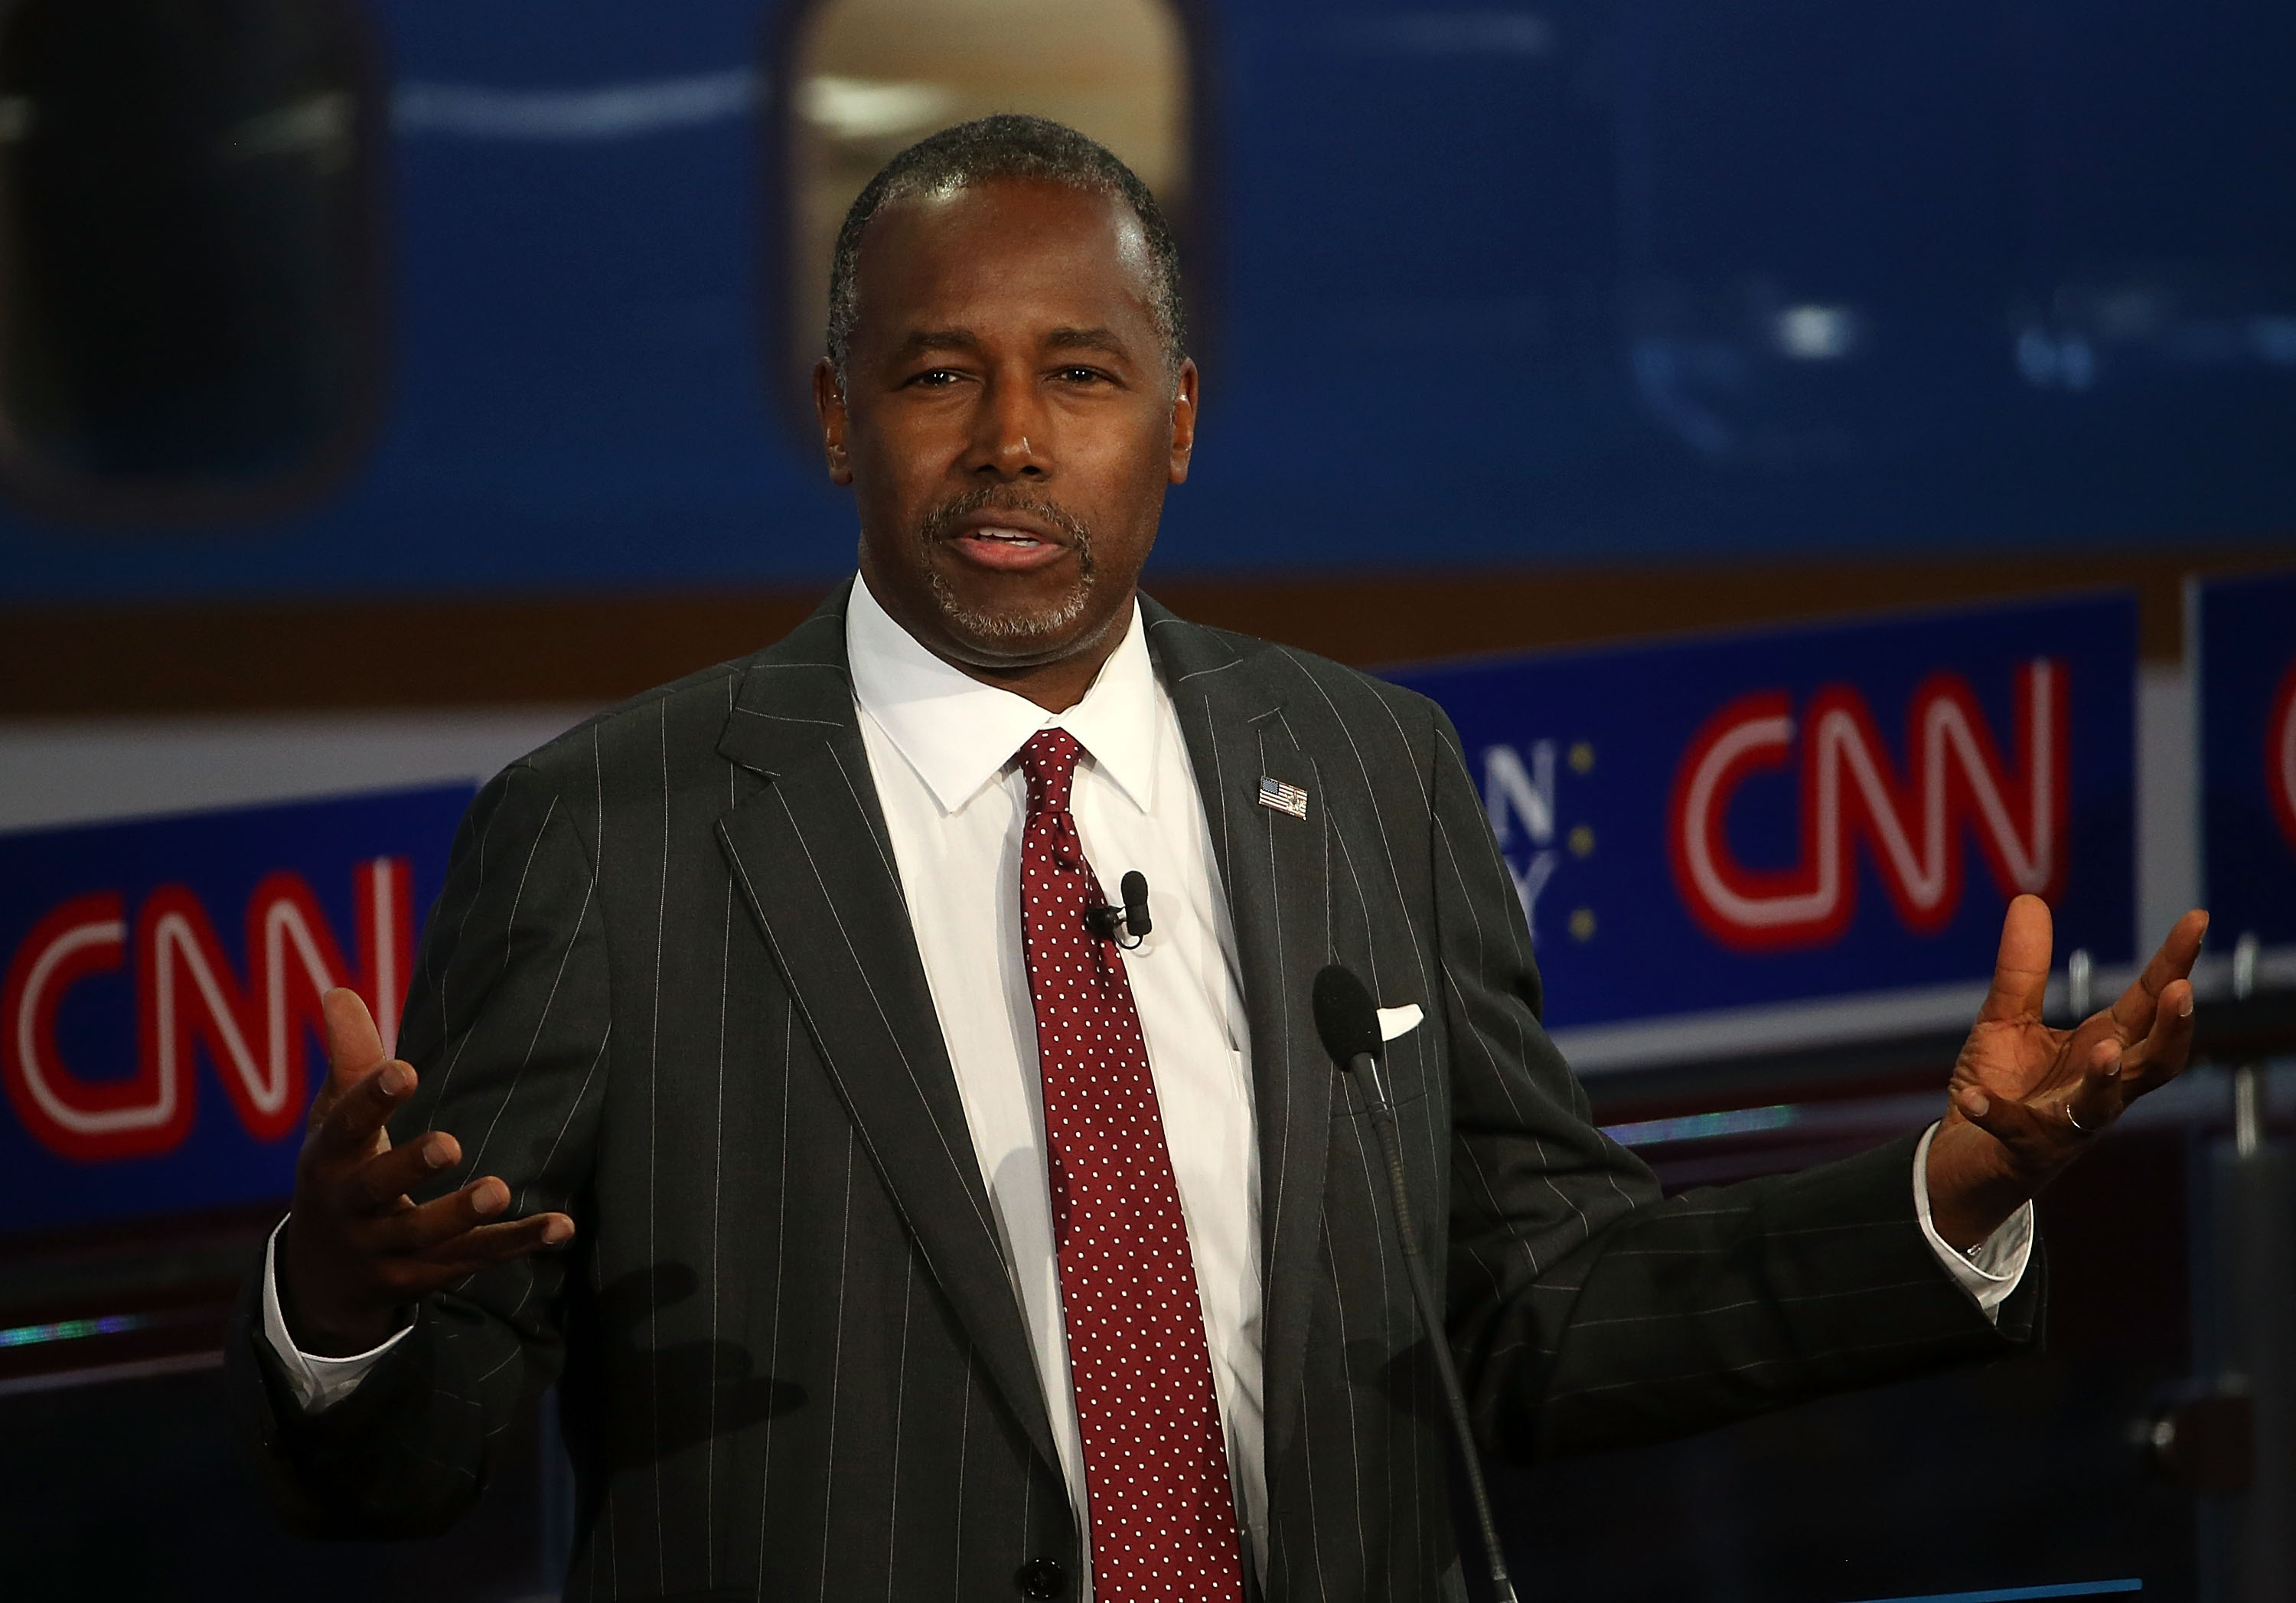 Republican presidential candidate Ben Carson takes part in the presidential debates at the Reagan Library in Simi Valley, Calif. on Sept. 16, 2015.